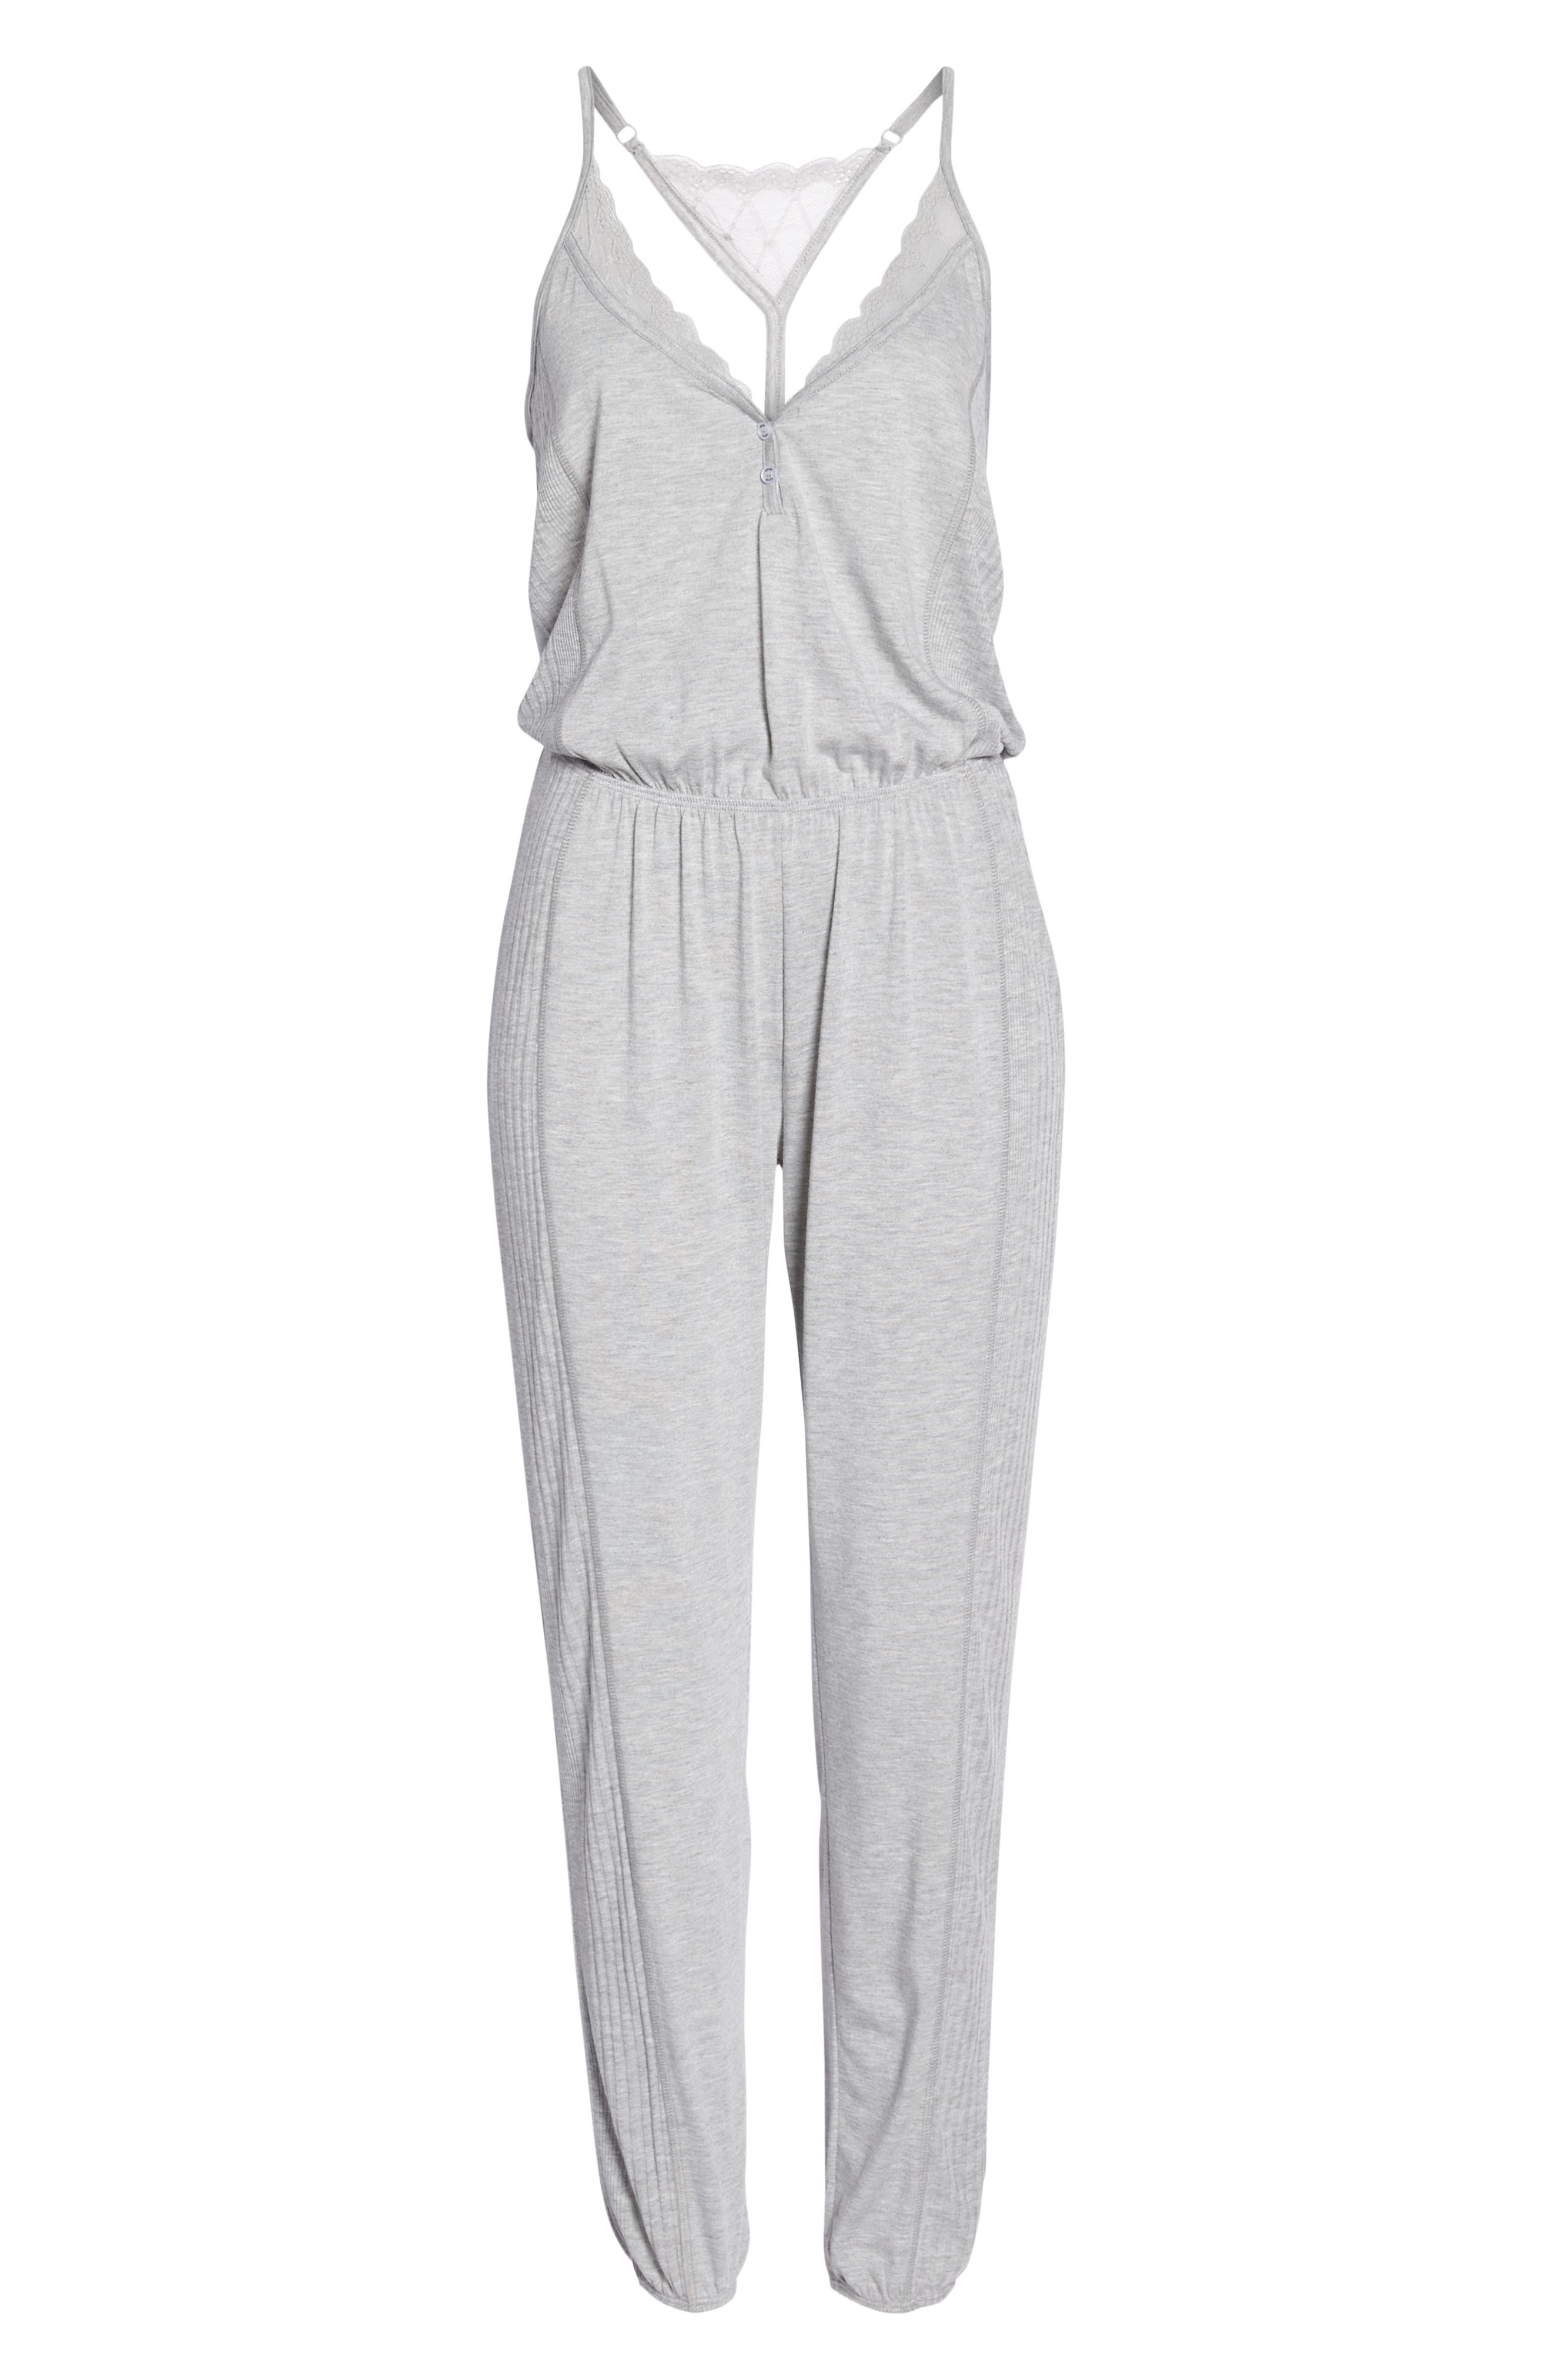 Romper Pajamas,                             Alternate thumbnail 6, color,                             Light Heather Grey